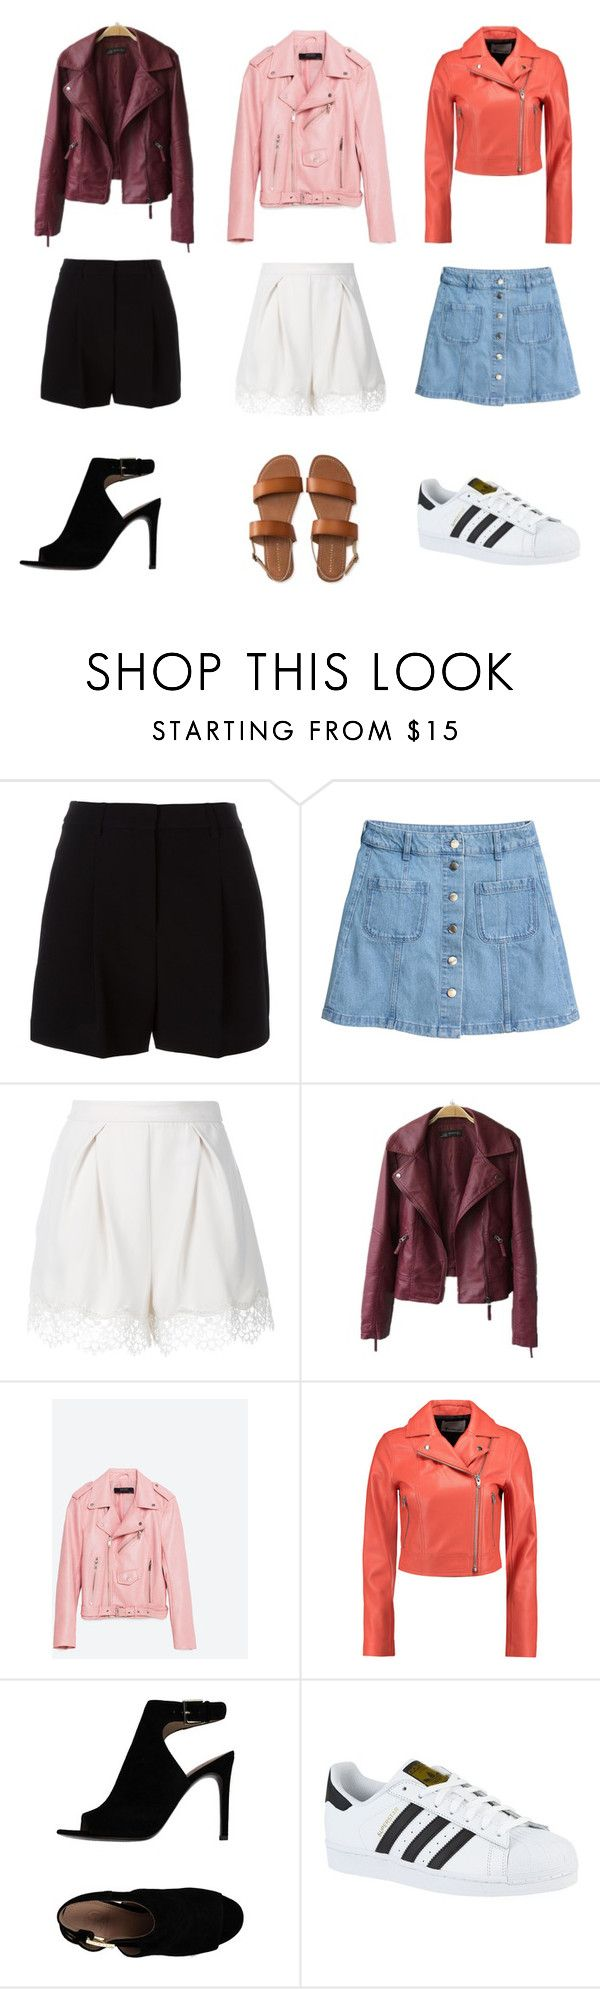 """""""MIX AND MATCH"""" by lauraaugustinus on Polyvore featuring DKNY, Zimmermann, Piel Leather, T By Alexander Wang, Tory Burch, adidas, Aéropostale, copenhagen and distortion"""